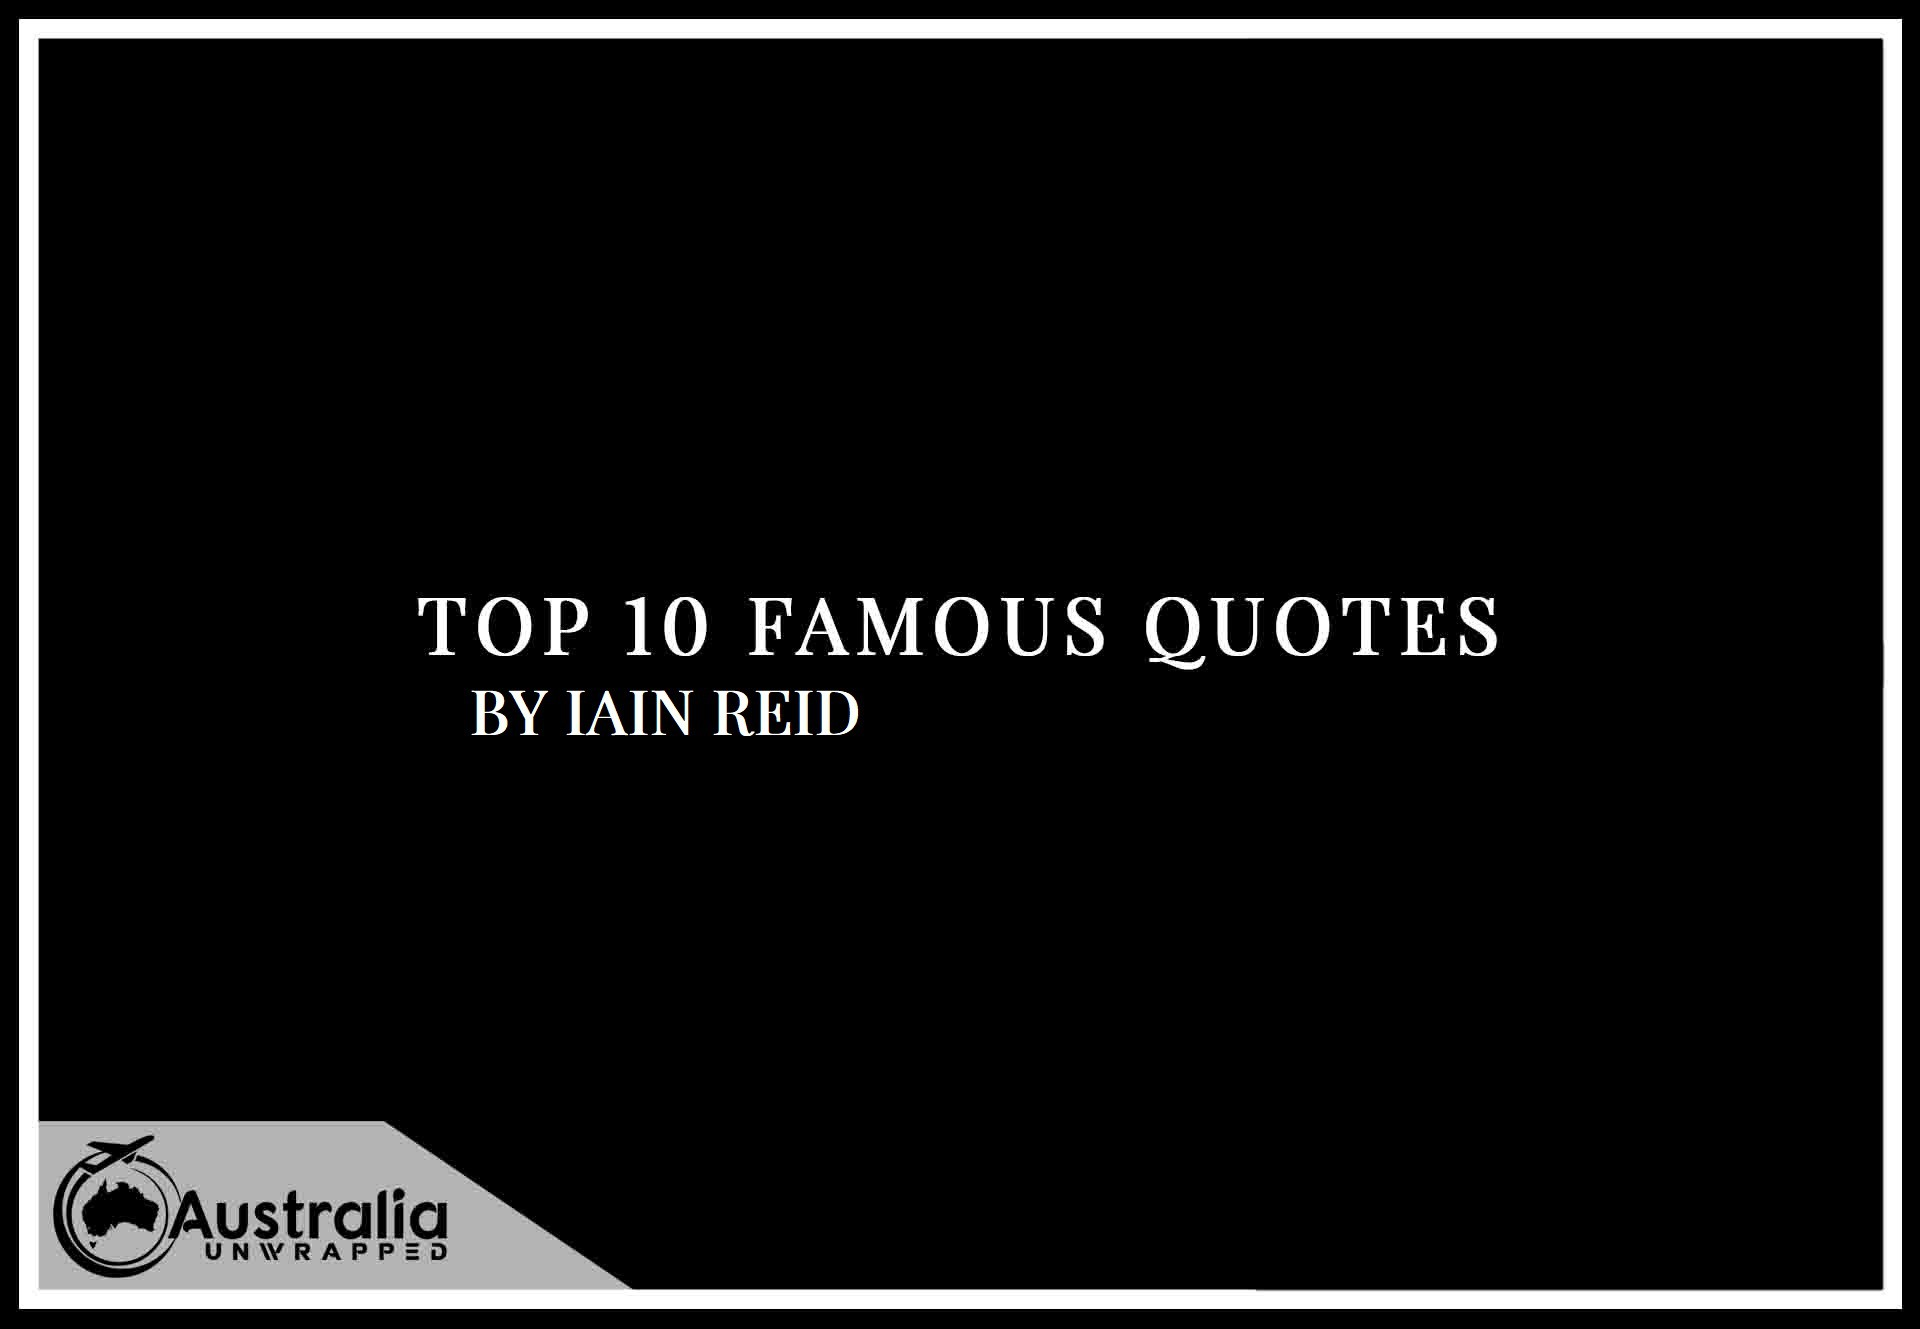 Top 10 Famous Quotes by Author Iain Reid